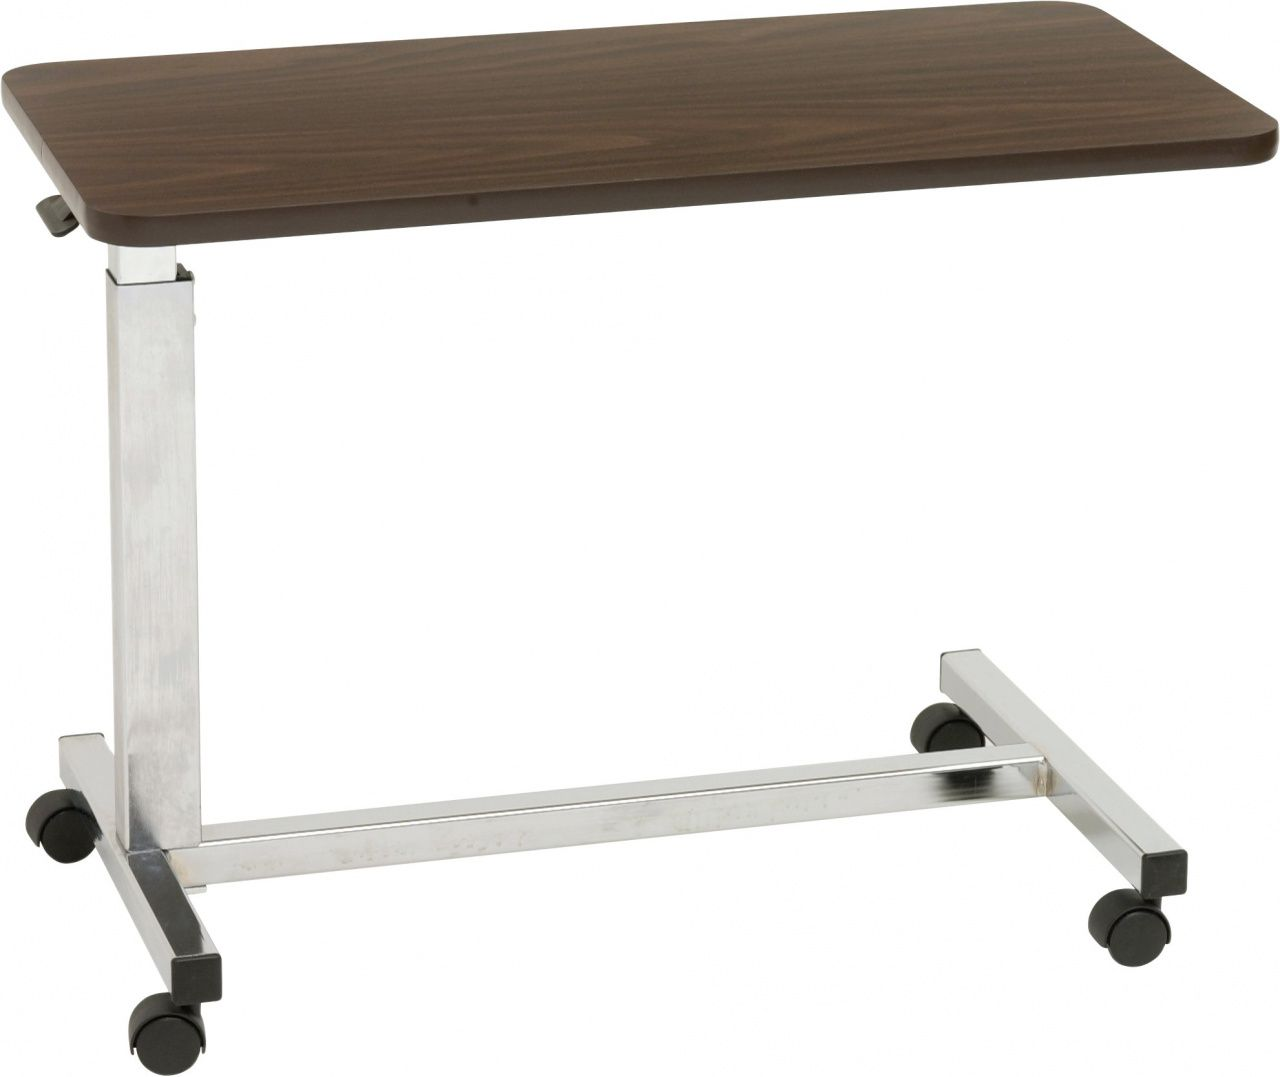 Over The Bed Table Home Office Furniture Desk Check More At Http Www Nikkitsfun Com Over The Bed Table Overbed Table Hospital Bed Table Bed Table